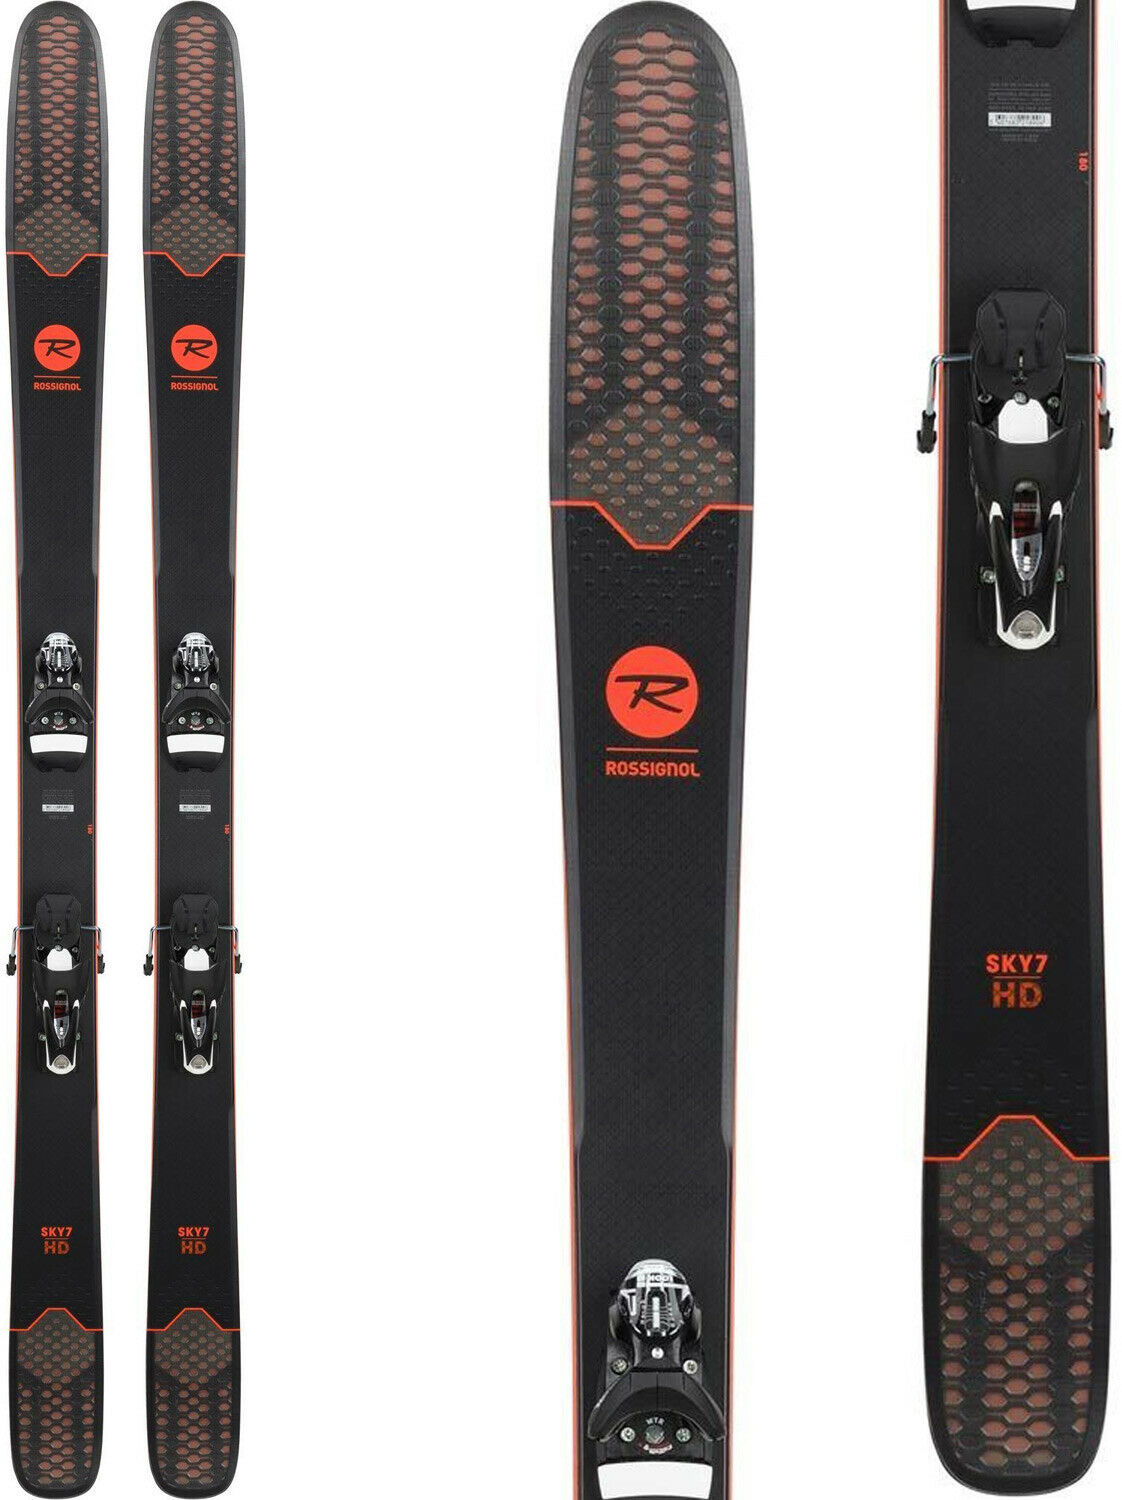 2019 Rossignol Sky 7 HD Konect- with integrated binding- limited quantities